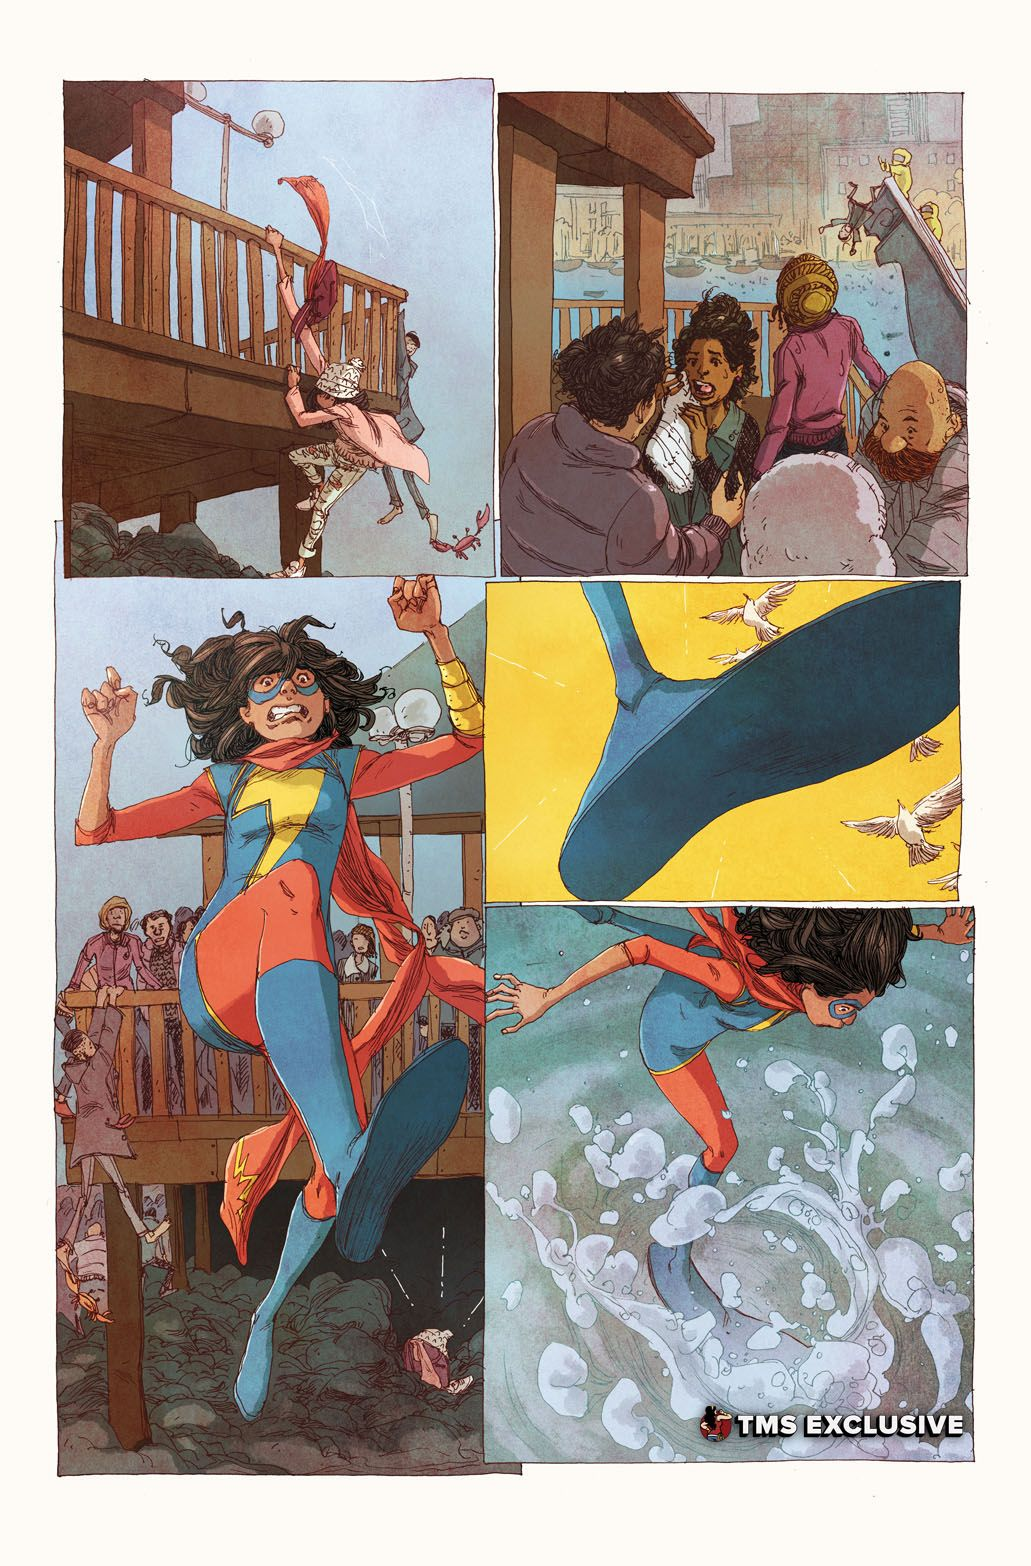 Ms. Marvel #16 - Art by Adrian Alphona